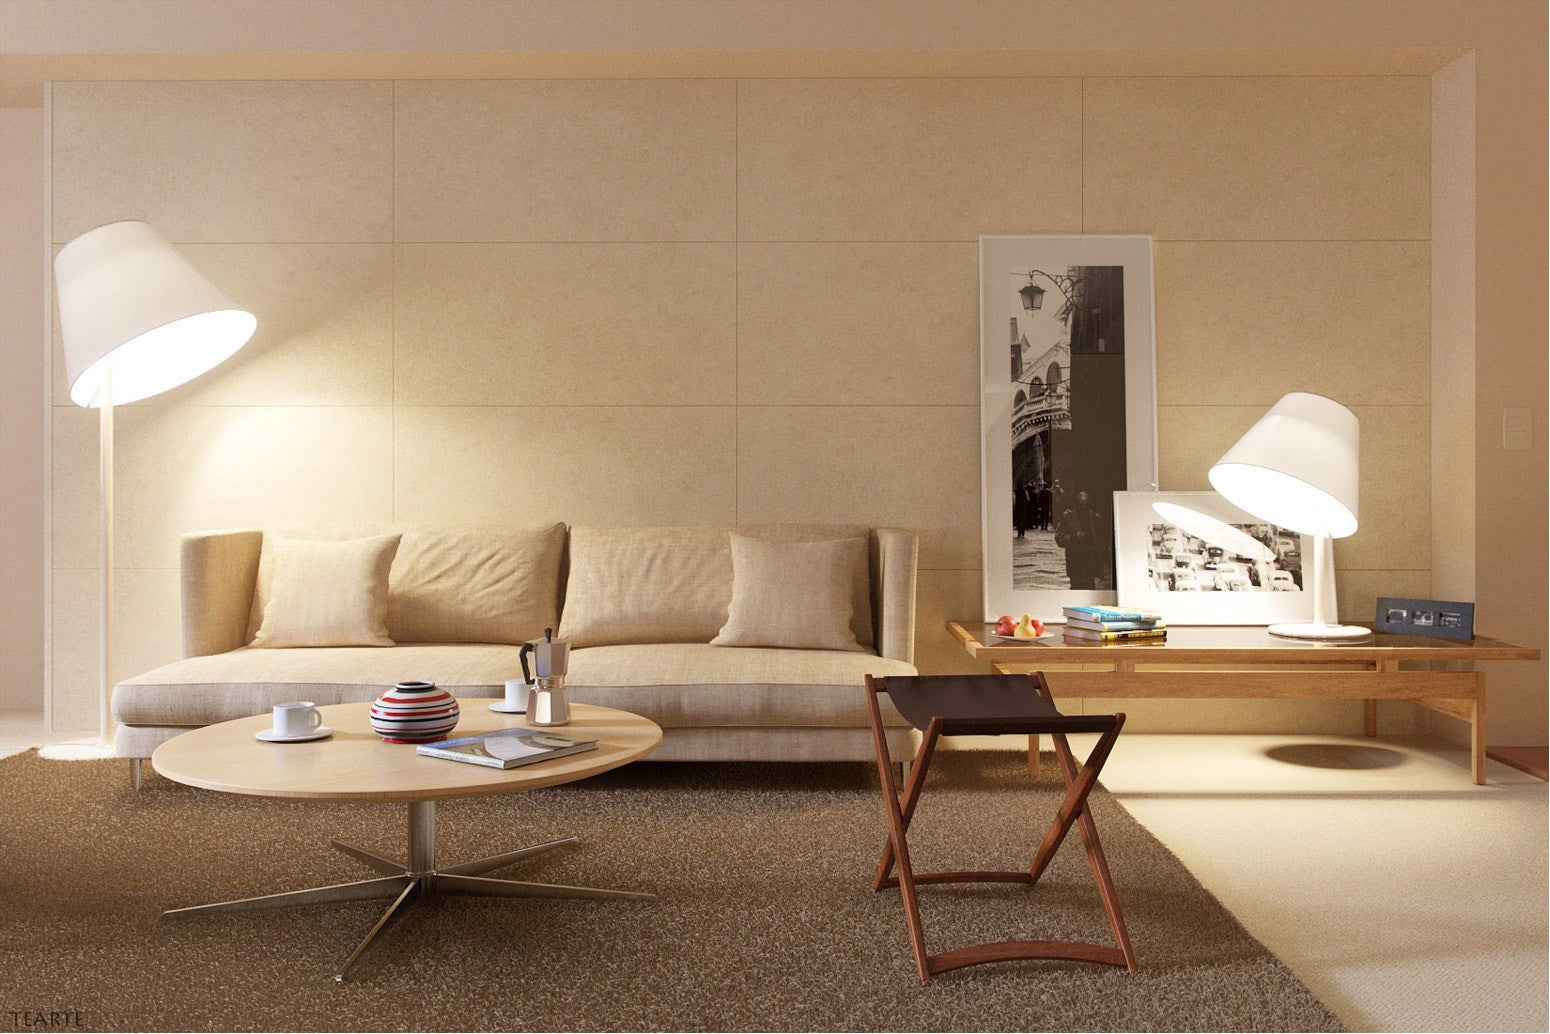 Cream and beige living room with beige sofa and round coffee table